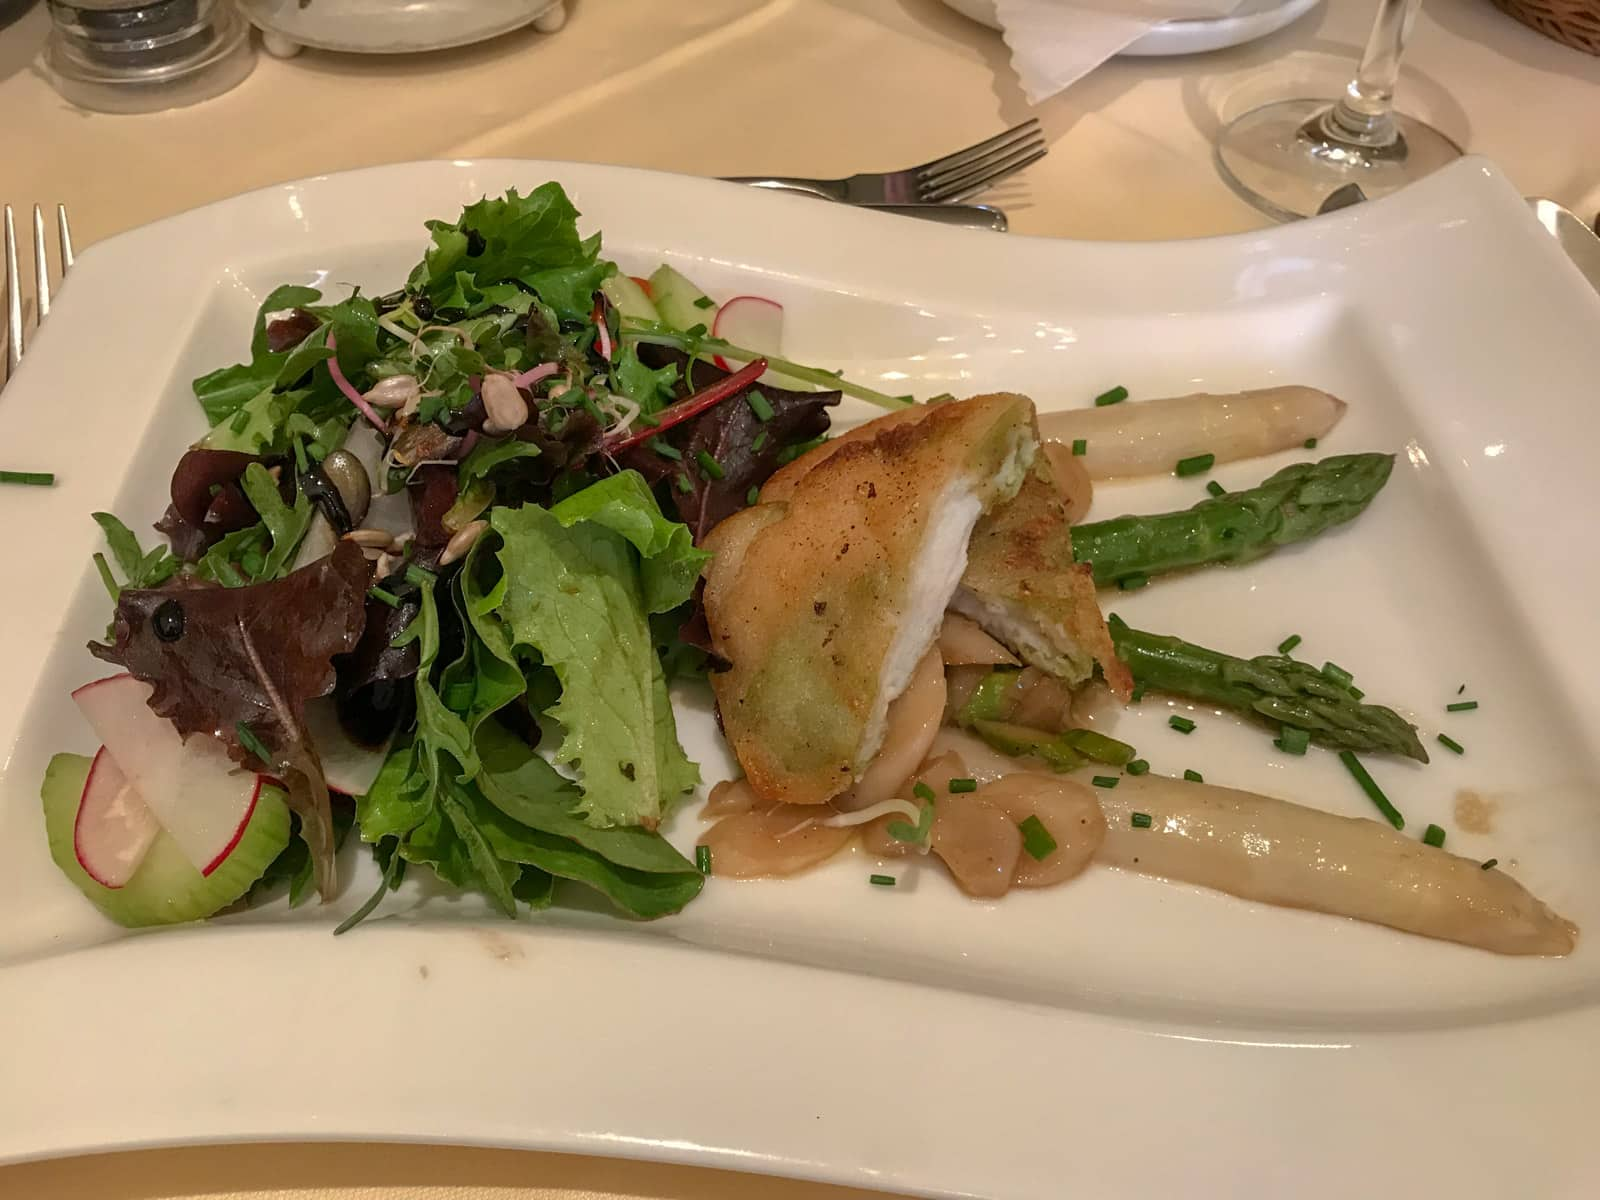 A white, flag-shaped plate on a dining table with salad, asparagus and fish served on it.